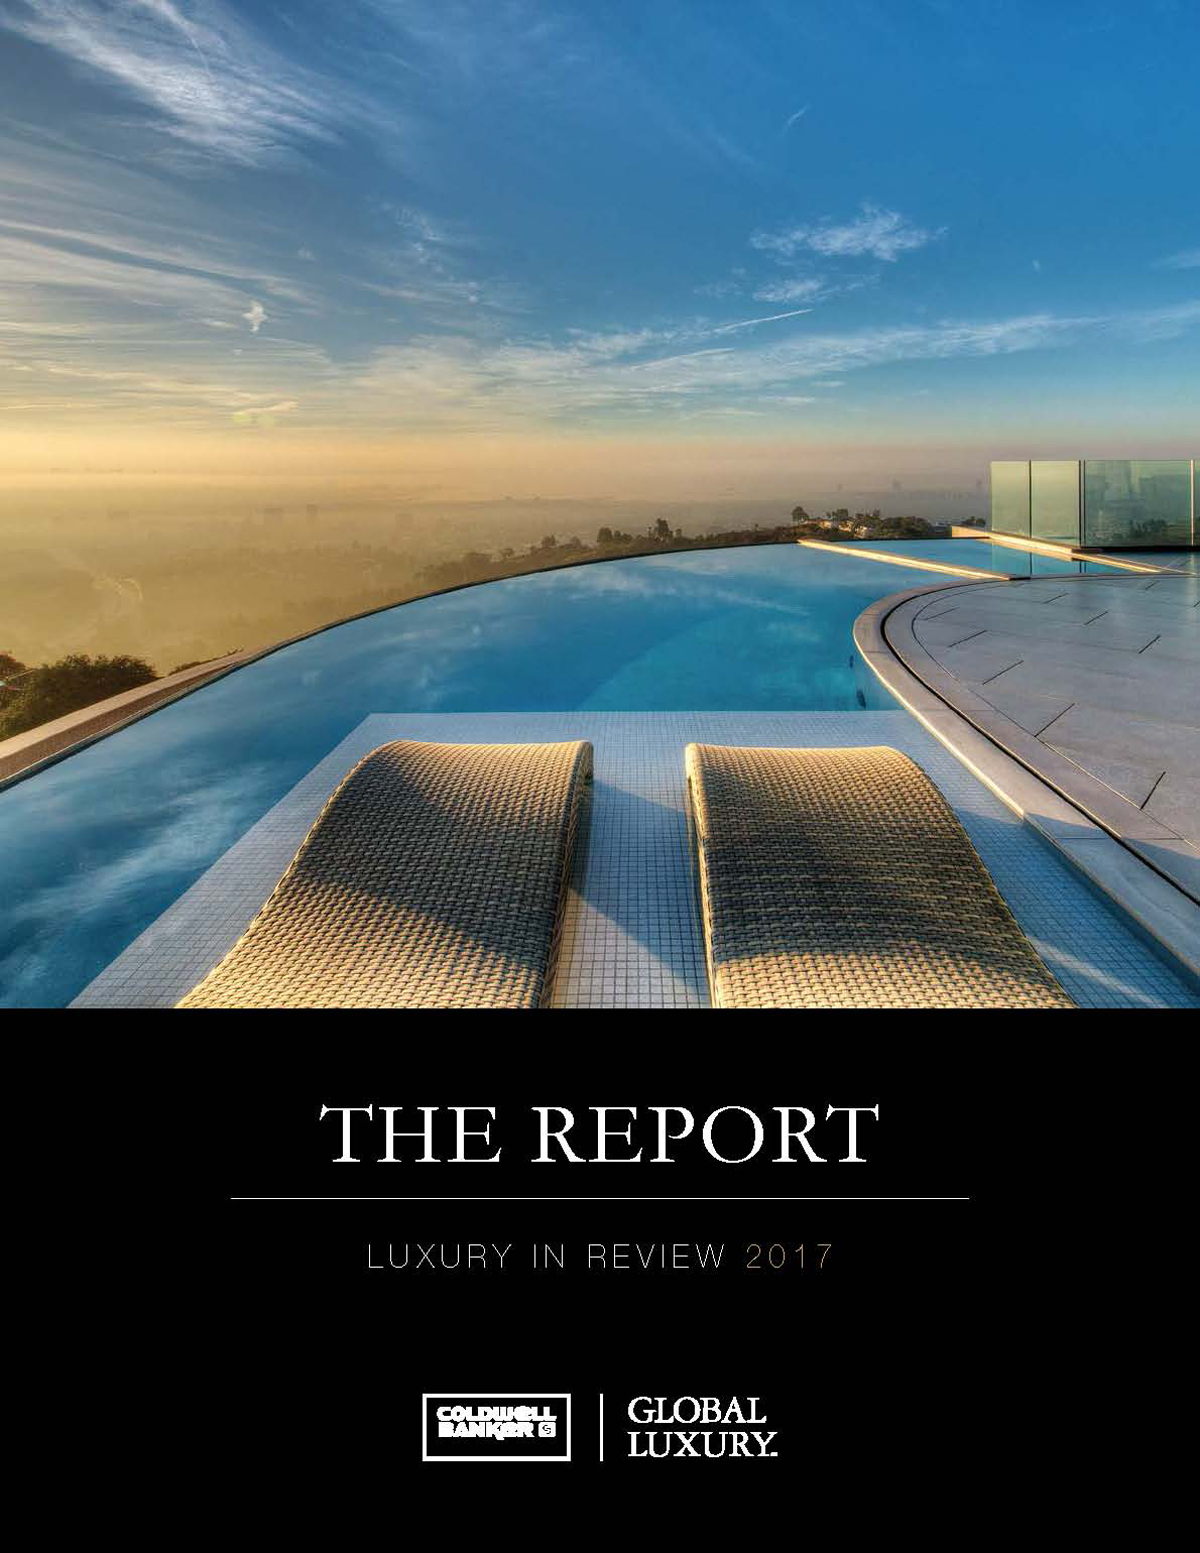 Coldwell Banker Global Luxury Report 2018